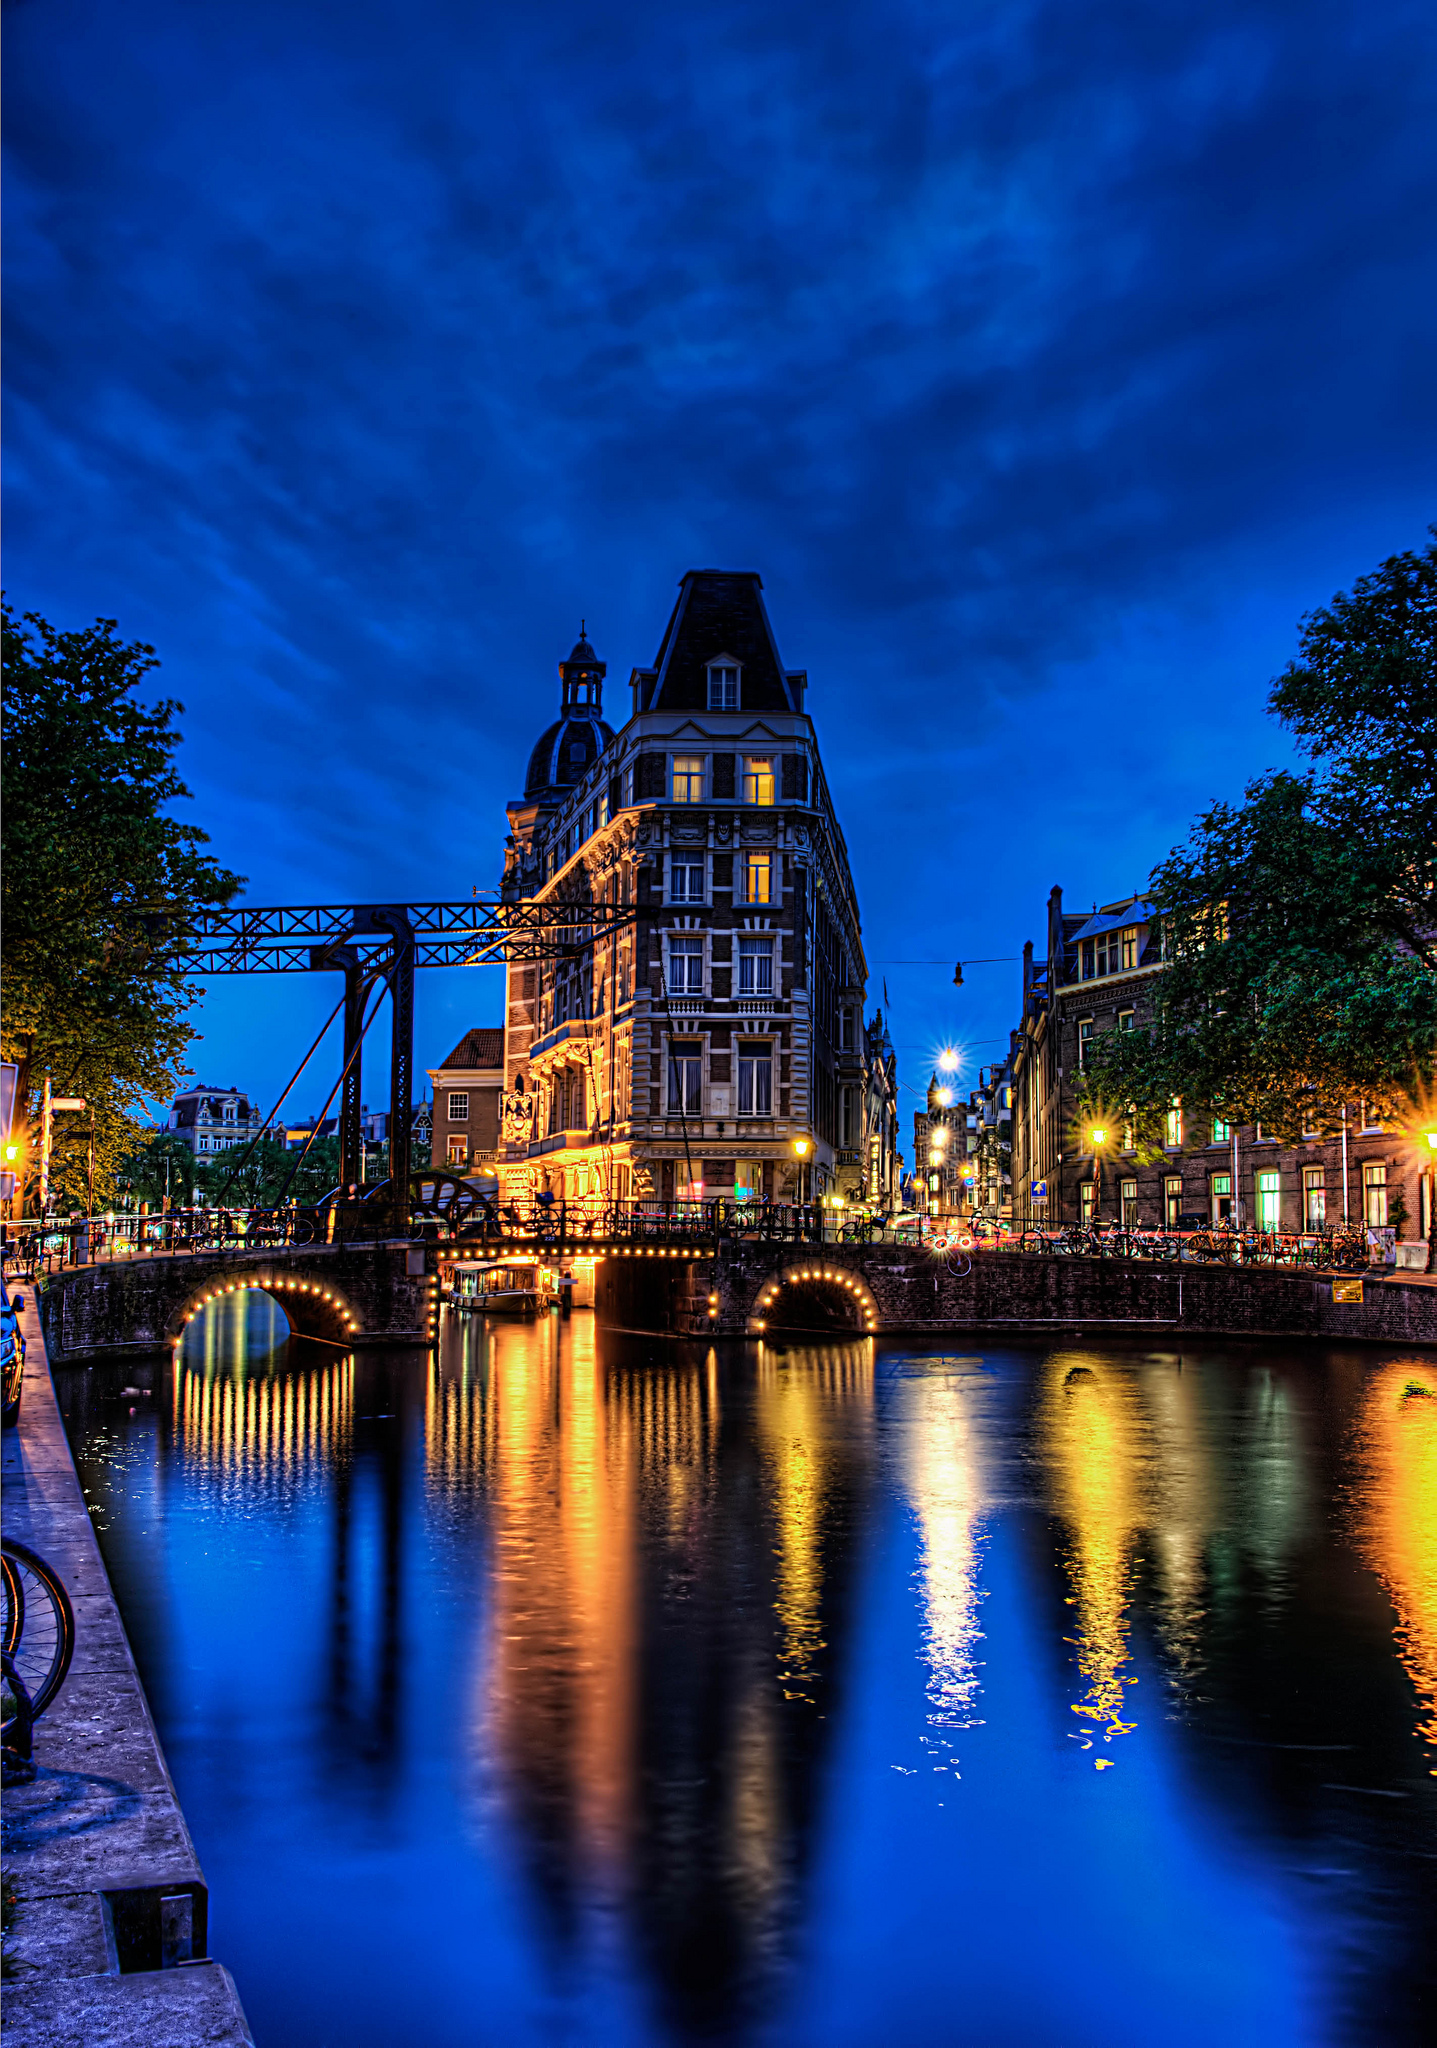 Https Www Tripsite Com Bike Tours Amsterdam To Bruges